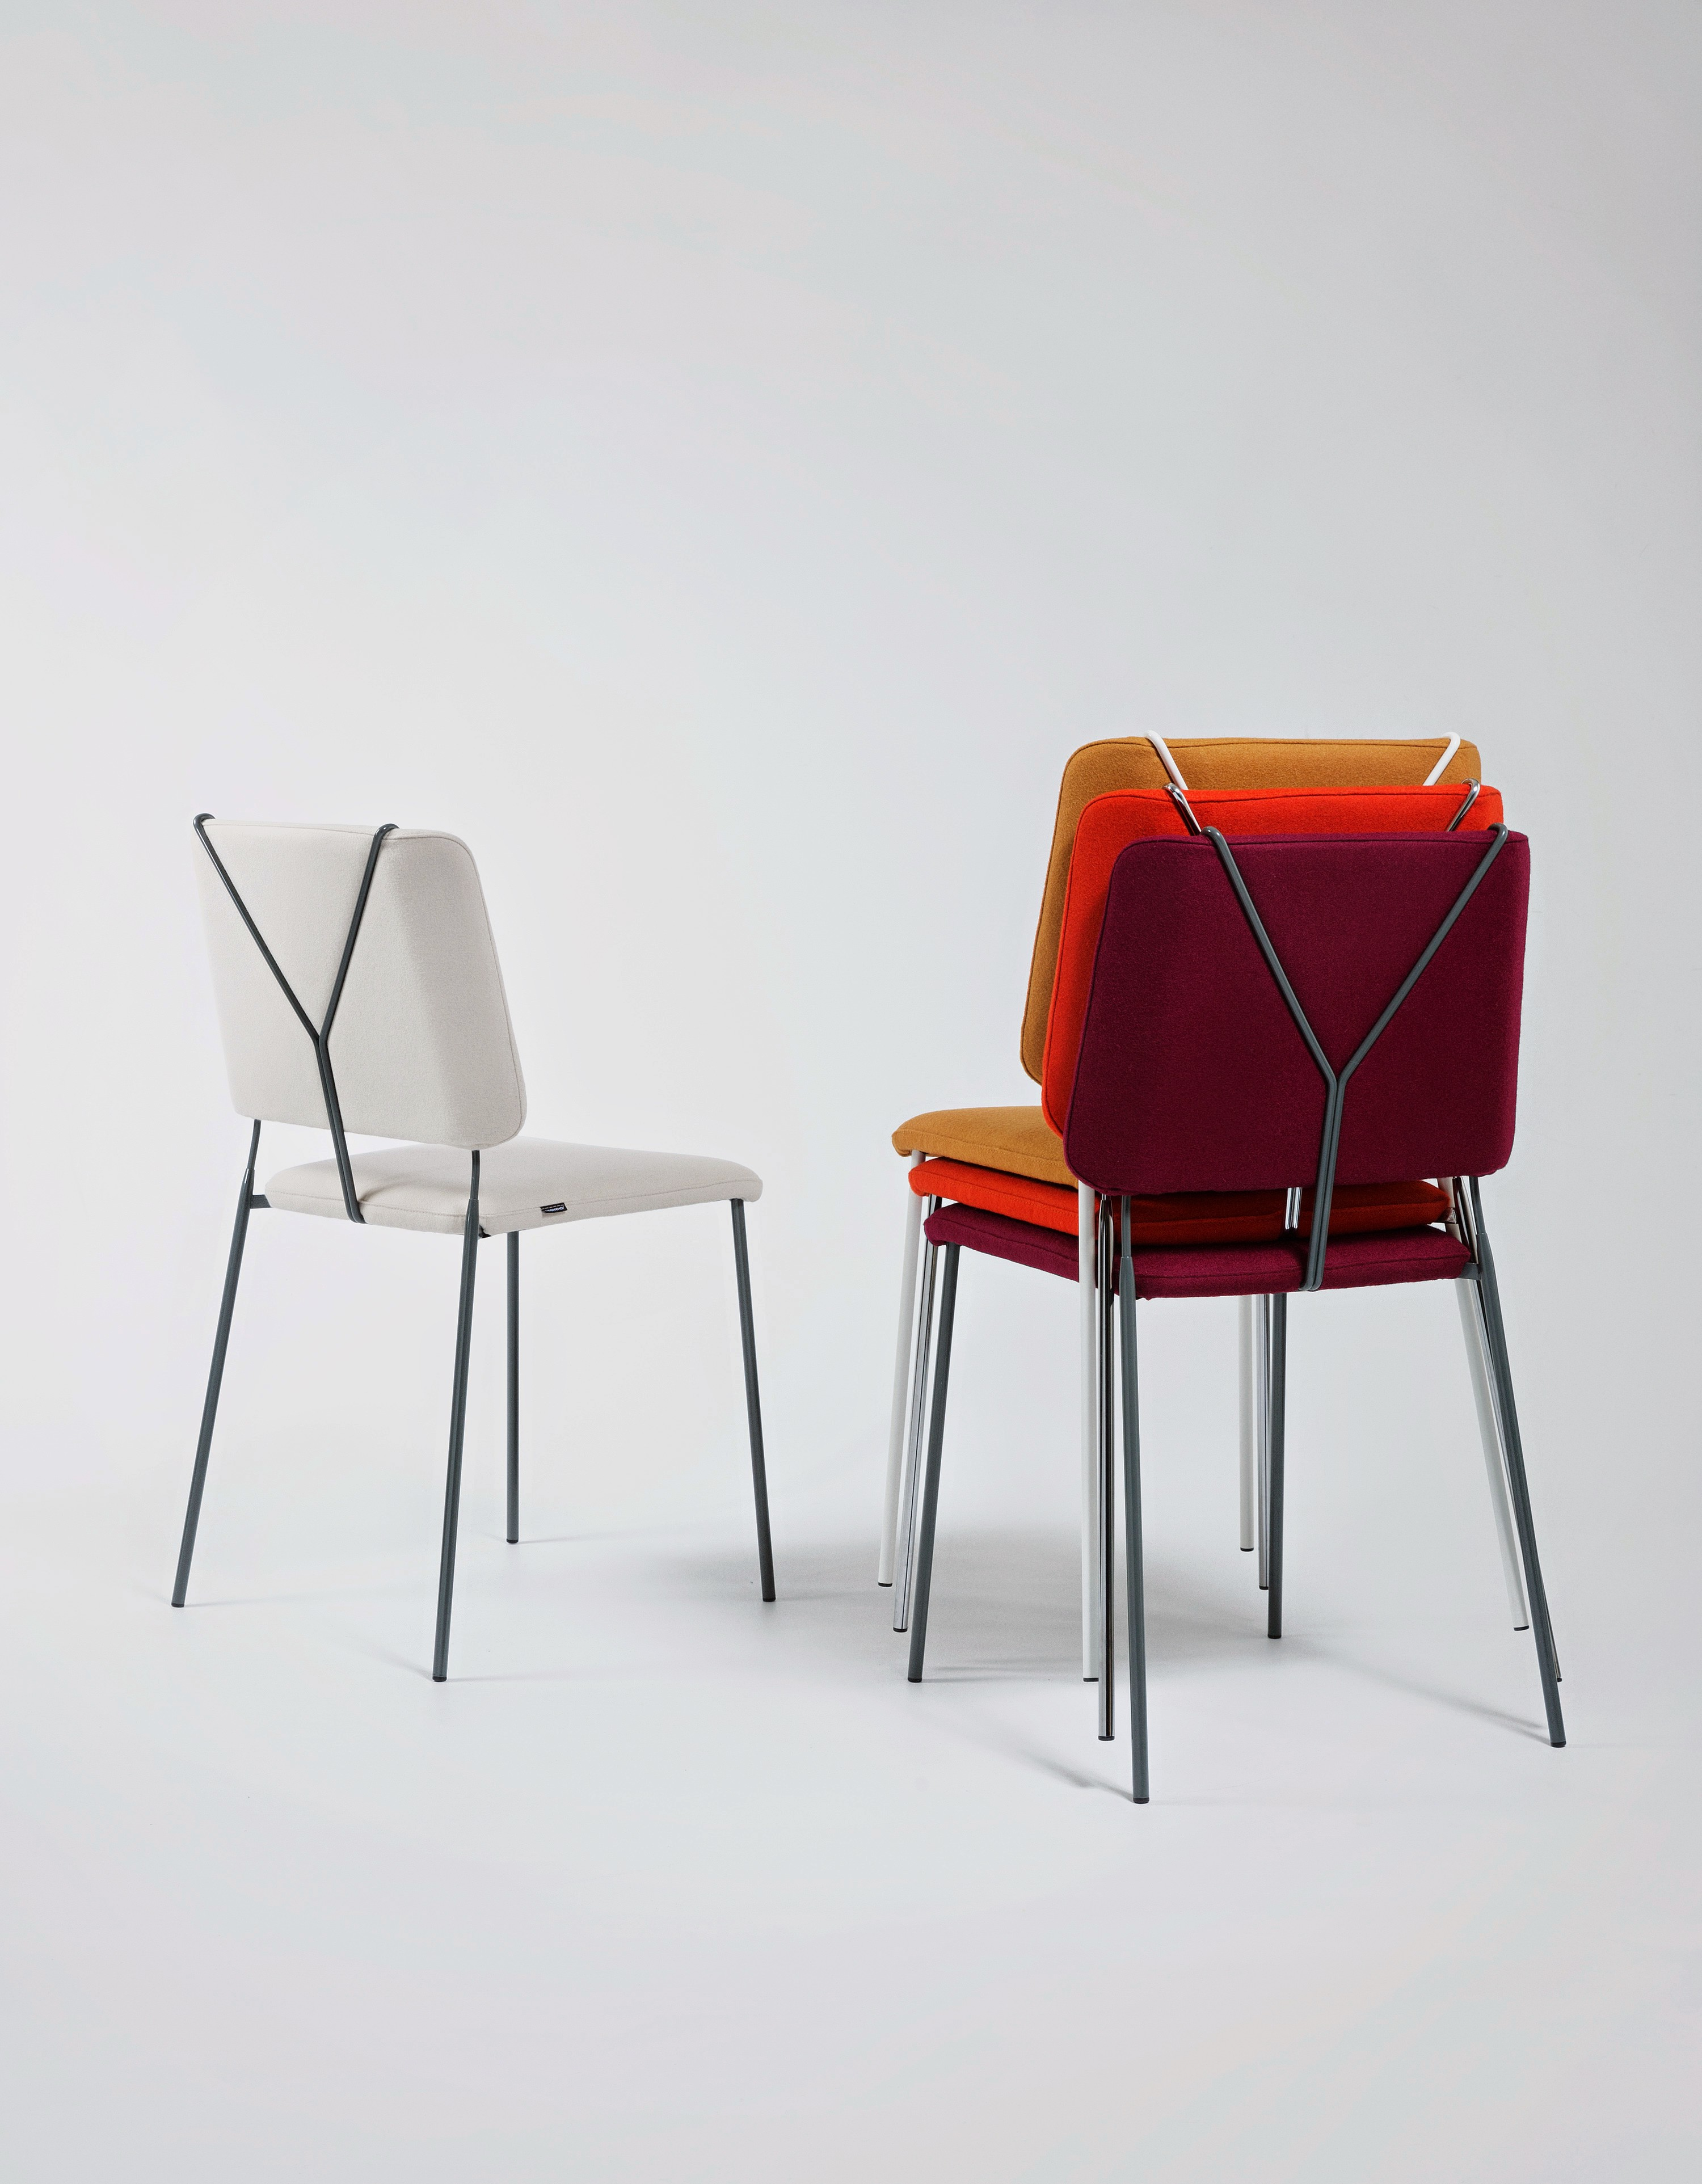 FRANKIE Chairs by Färg & Blanche for Johanson Design